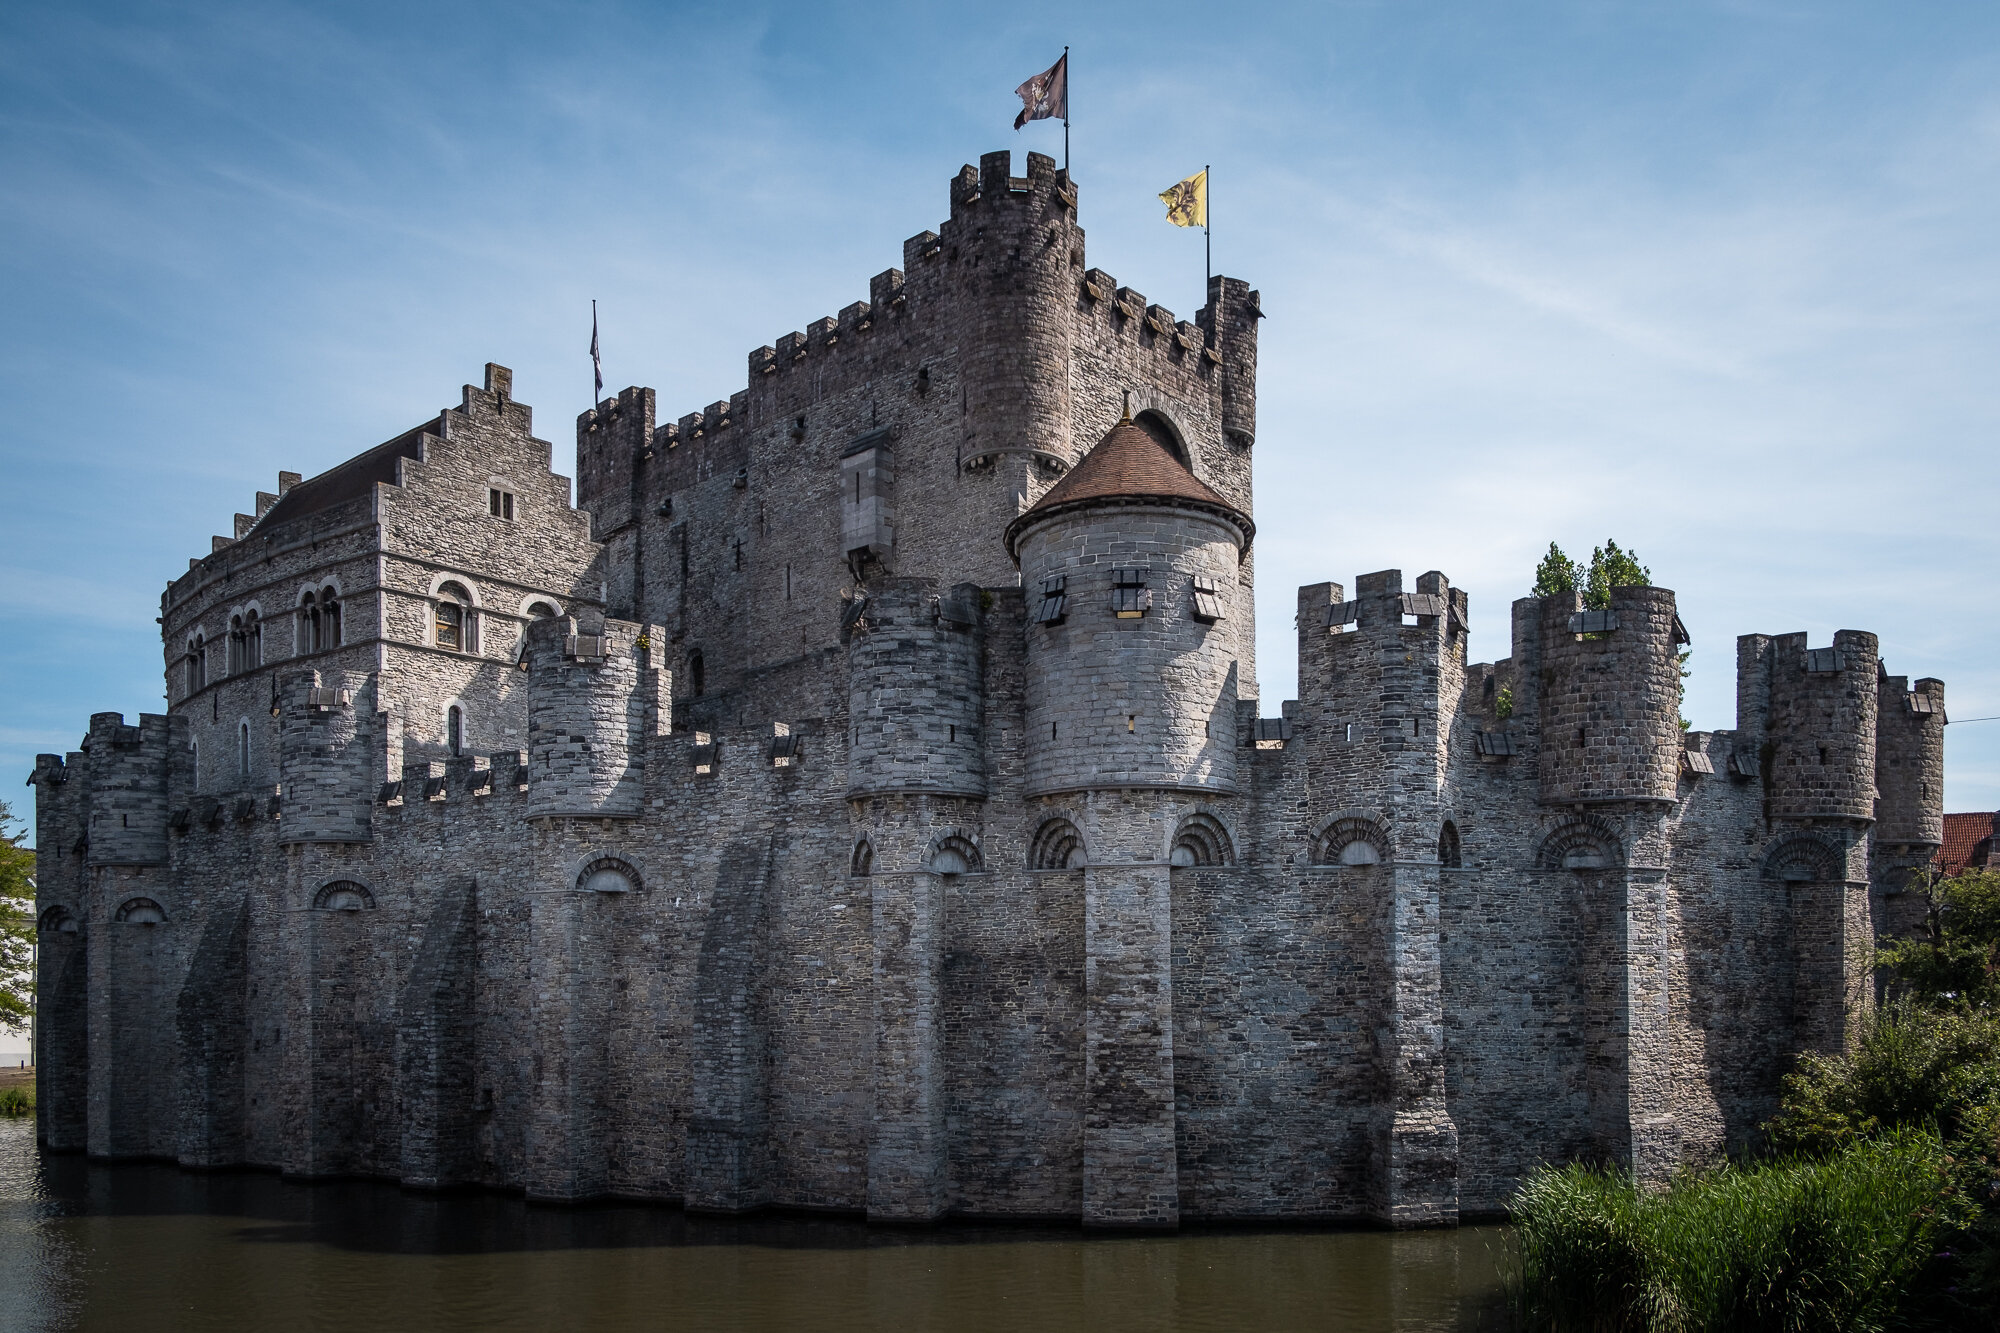 A view of Gravensteen Castle from River Leie